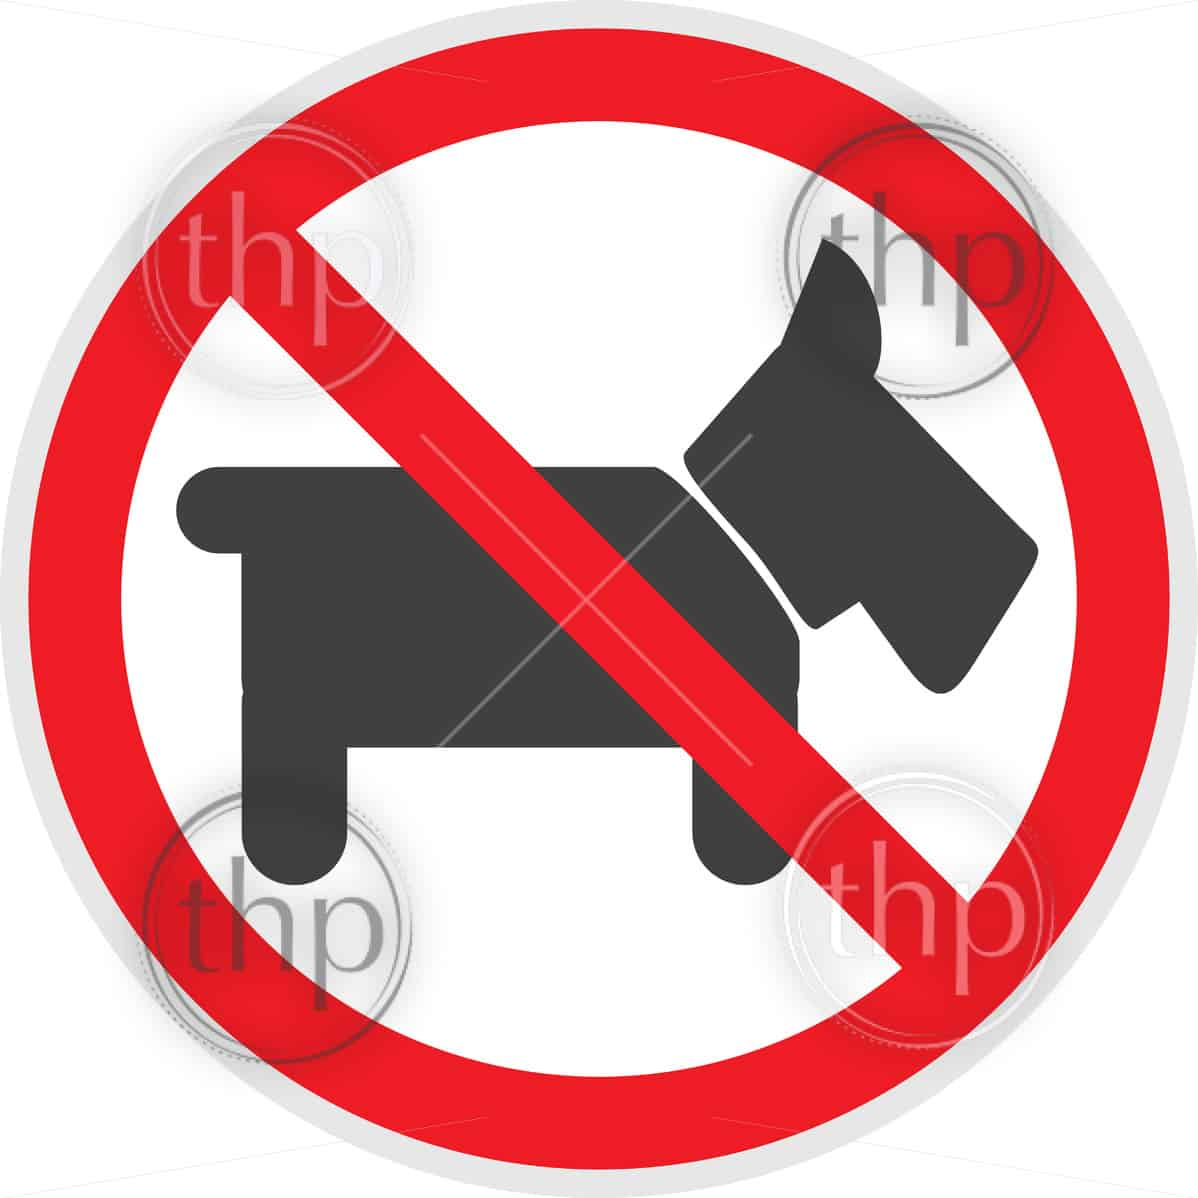 No dogs or animals sign vector depicting banned activities